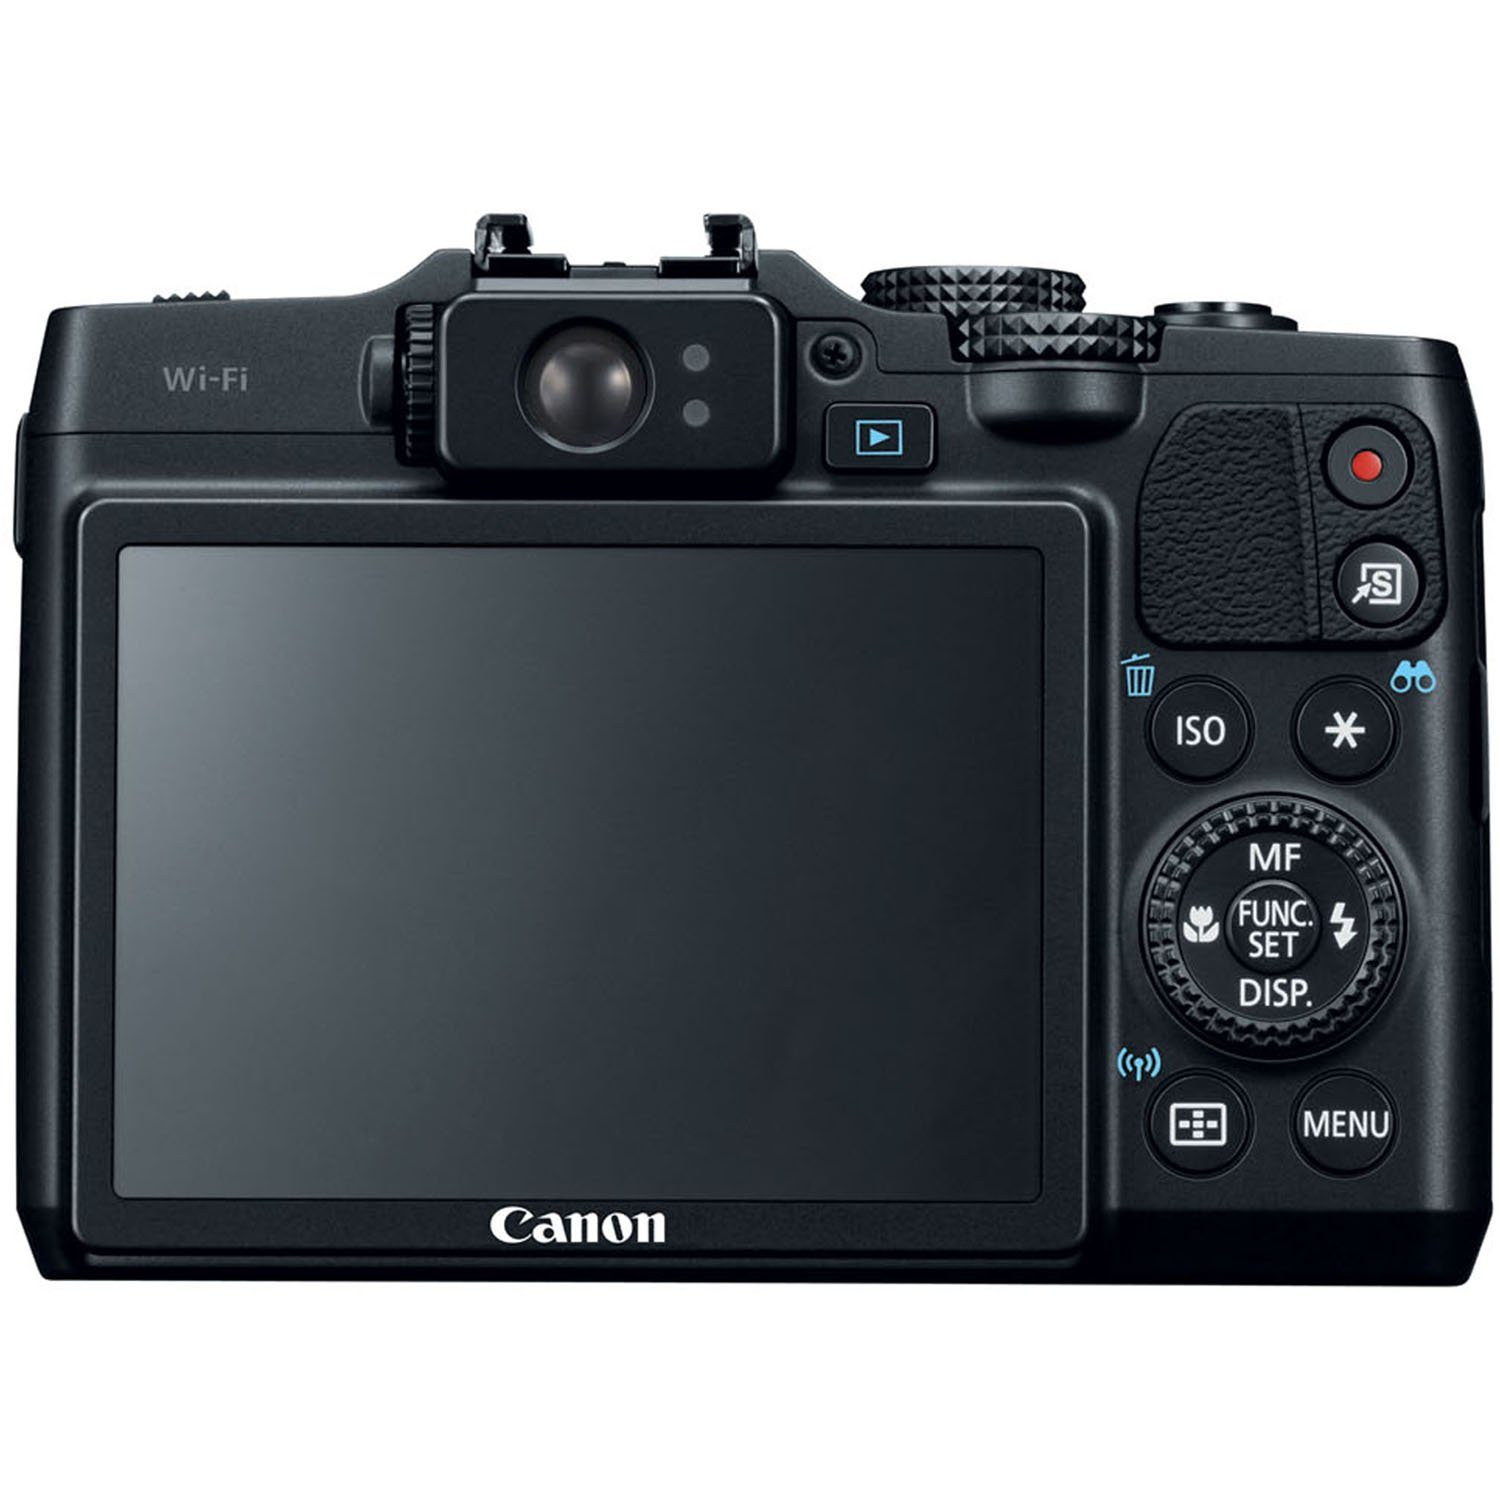 Amazon.com : Canon PowerShot G16 12.1 MP CMOS Digital Camera with 5x  Optical Zoom and 1080p Full-HD Video Wi-Fi Enabled : Point And Shoot  Digital Cameras ...